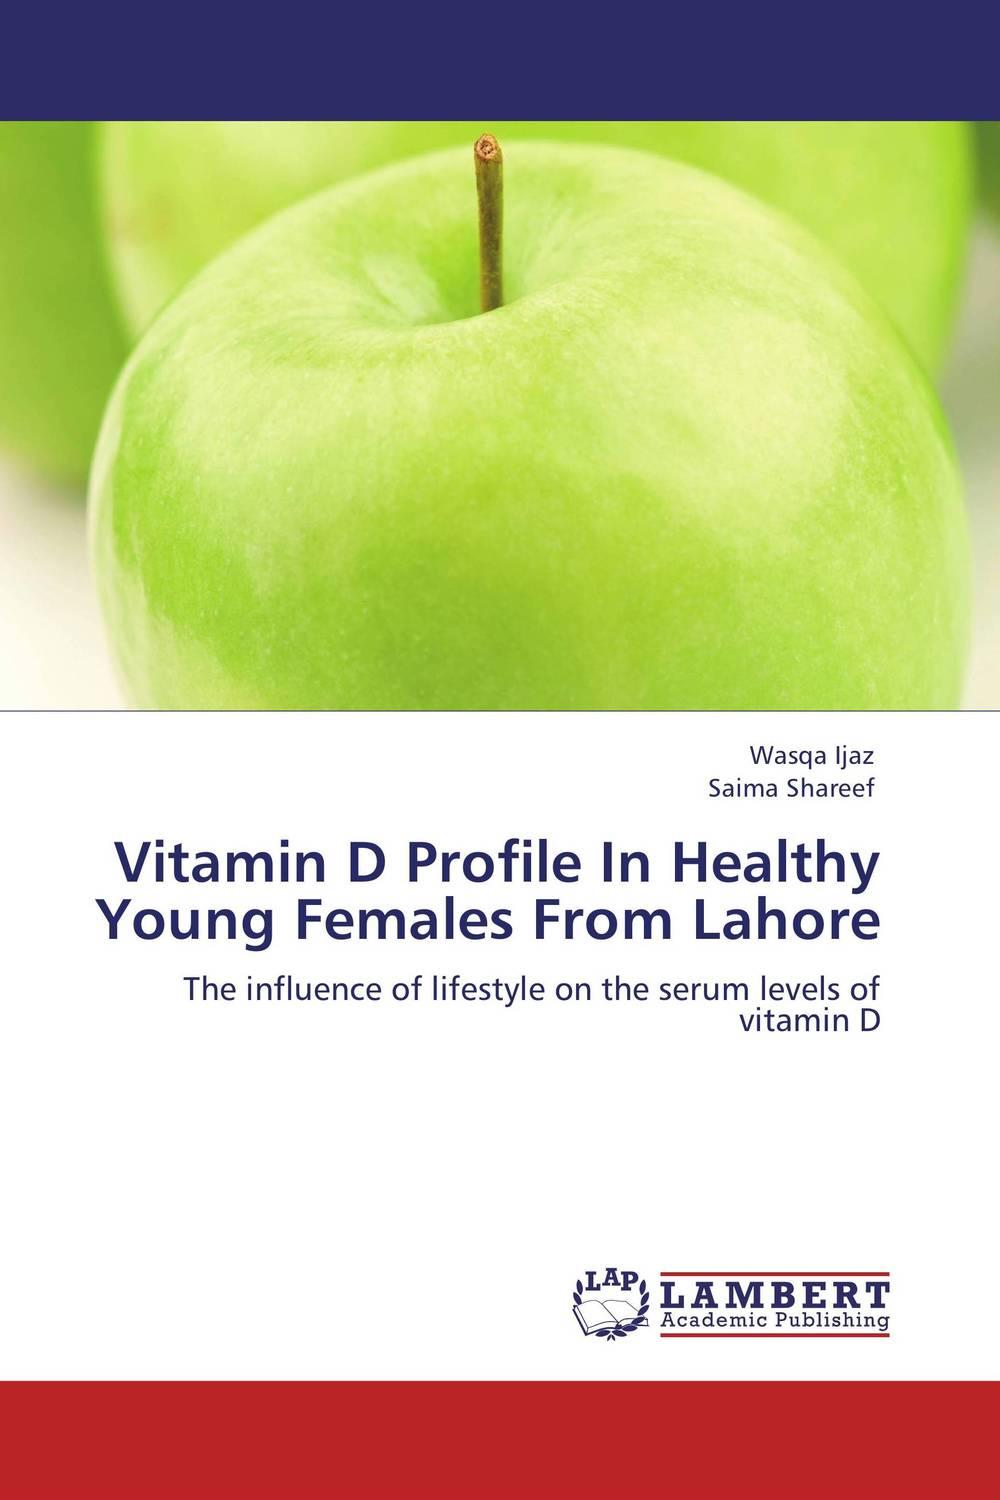 Vitamin D Profile In Healthy Young Females From Lahore vitamin a deficiency in urban slums